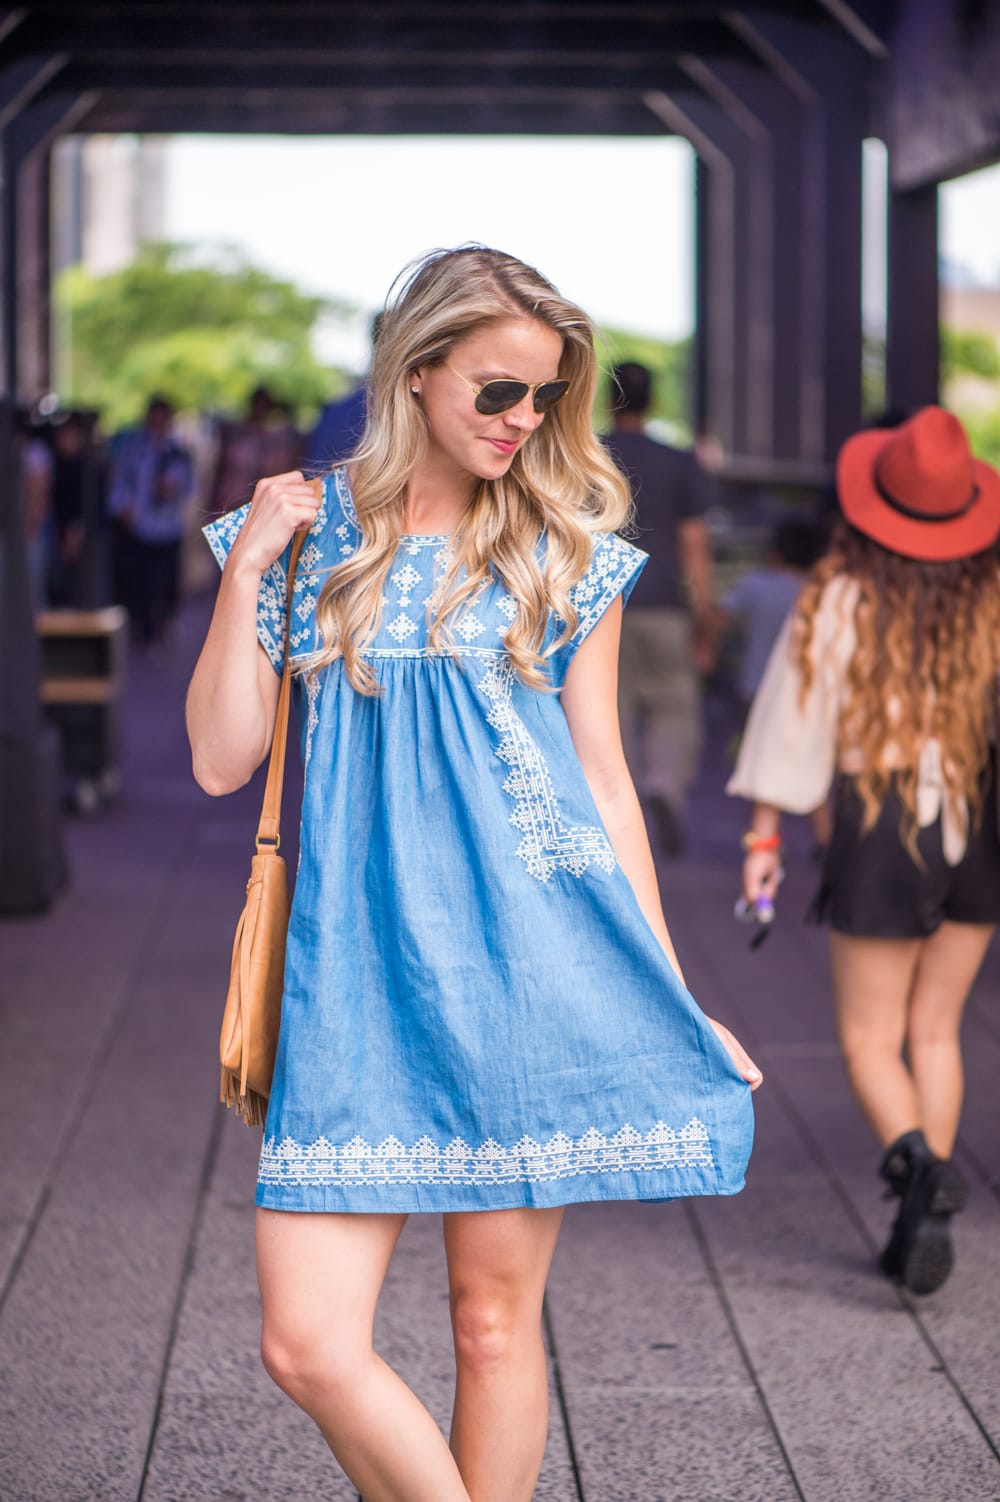 746ae2aaaa61 EMBROIDERED CHAMBRAY DRESS - Styled Snapshots